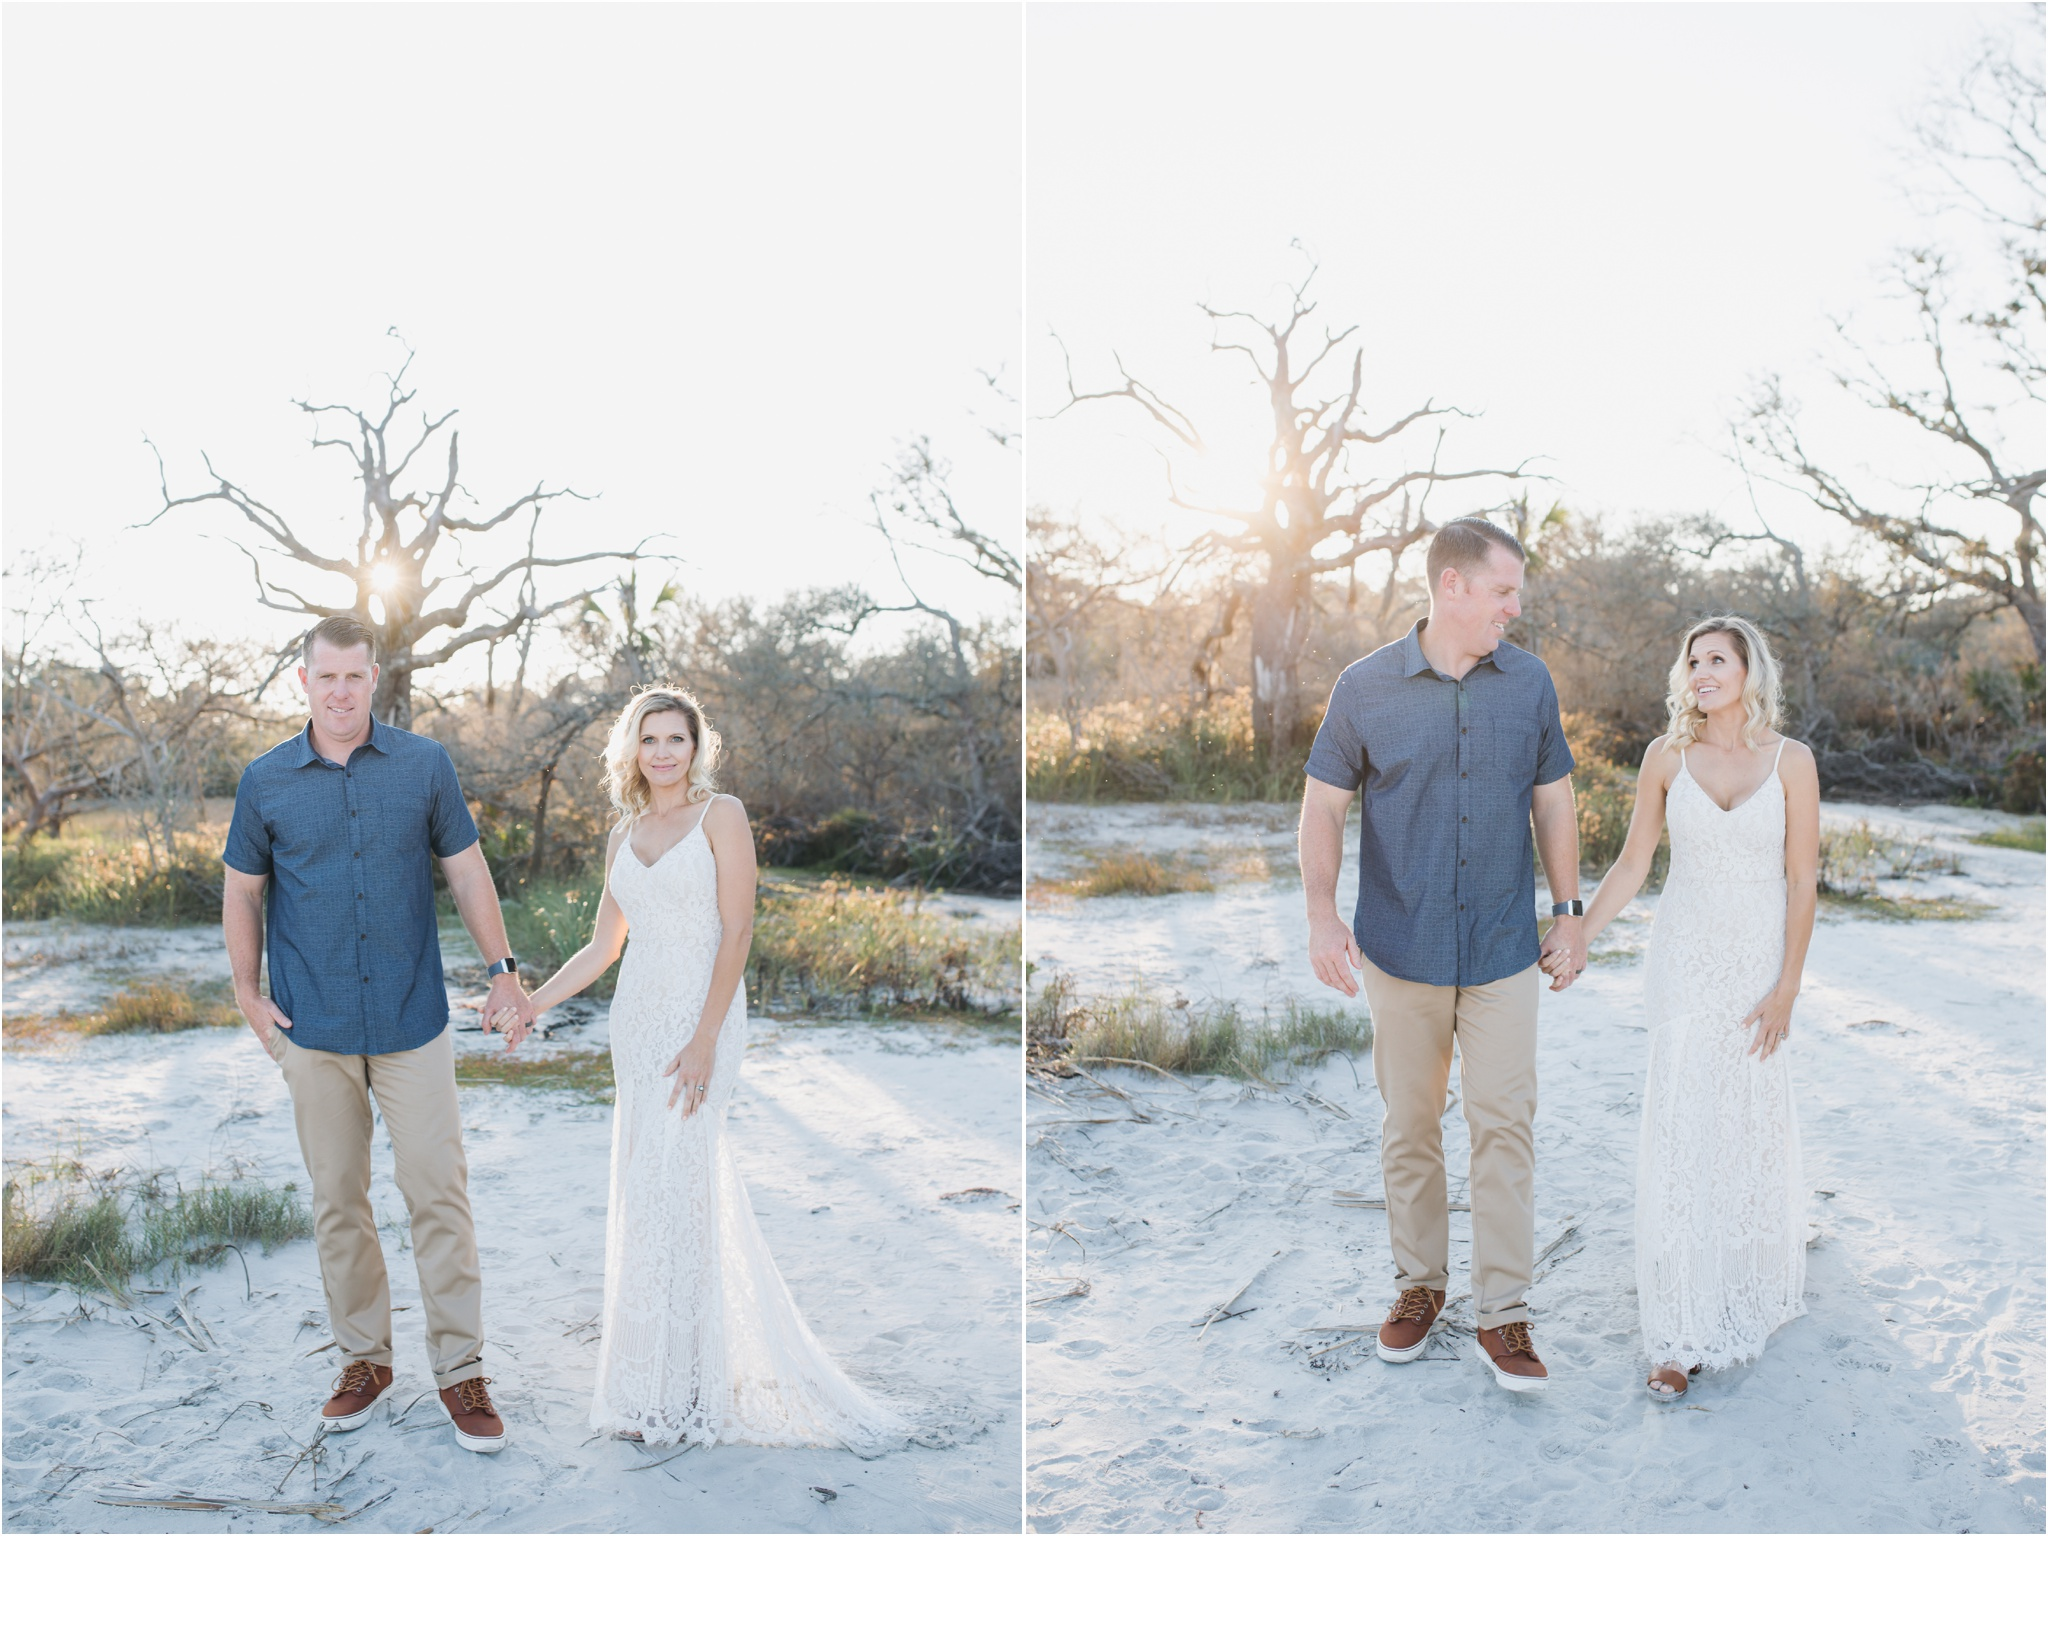 Rainey_Gregg_Photography_St._Simons_Island_Georgia_California_Wedding_Portrait_Photography_1590.jpg